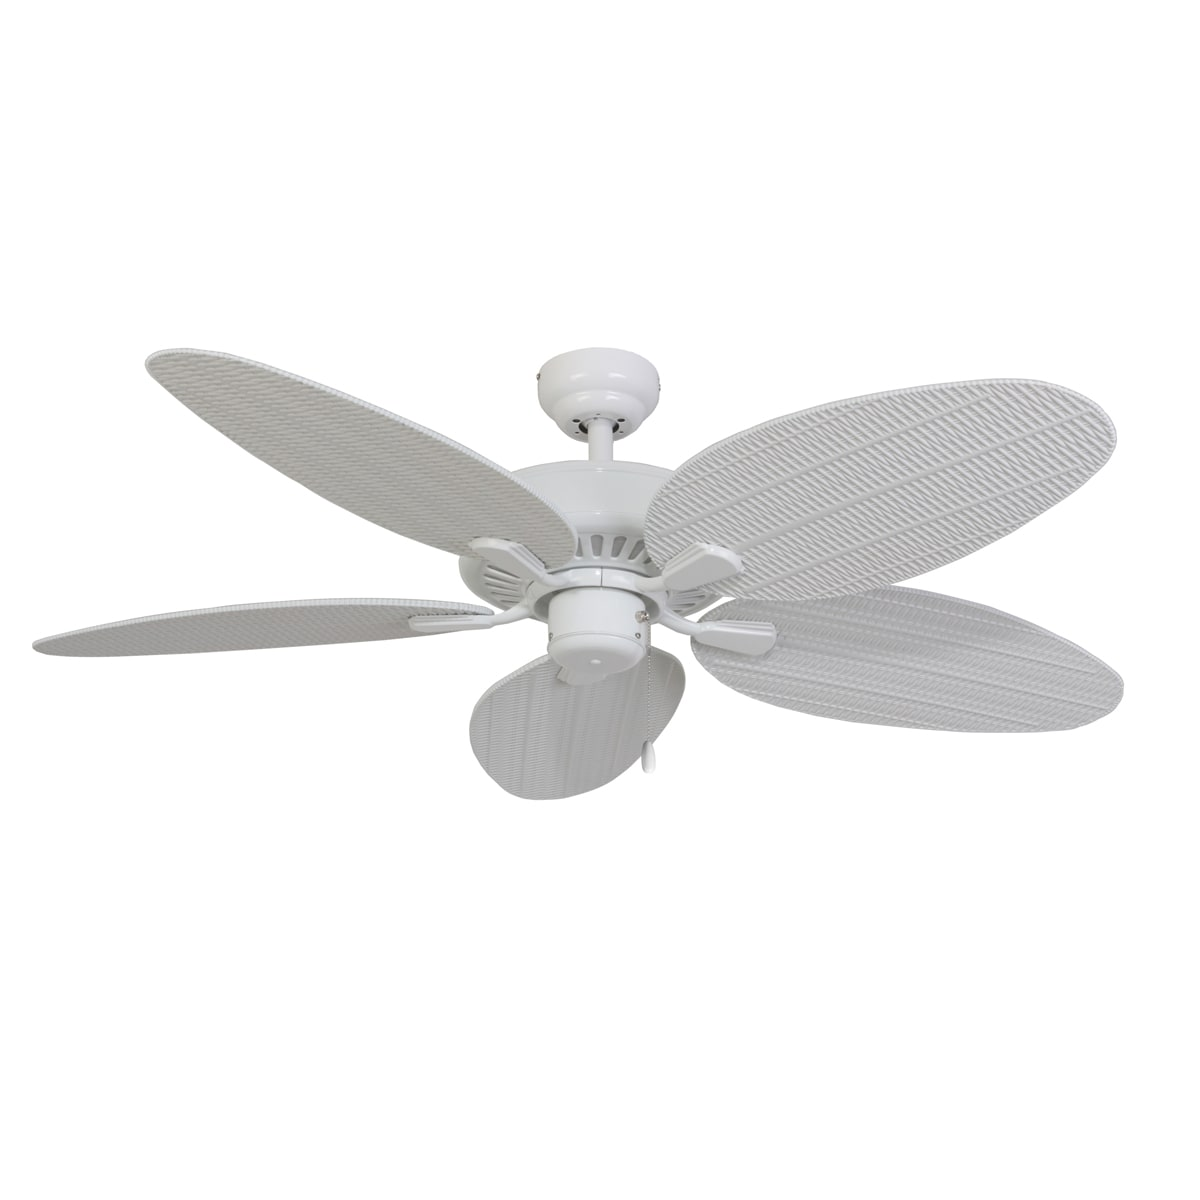 EcoSure Siesta Key White 52-inch 5-blade Ceiling Fan - Thumbnail 0